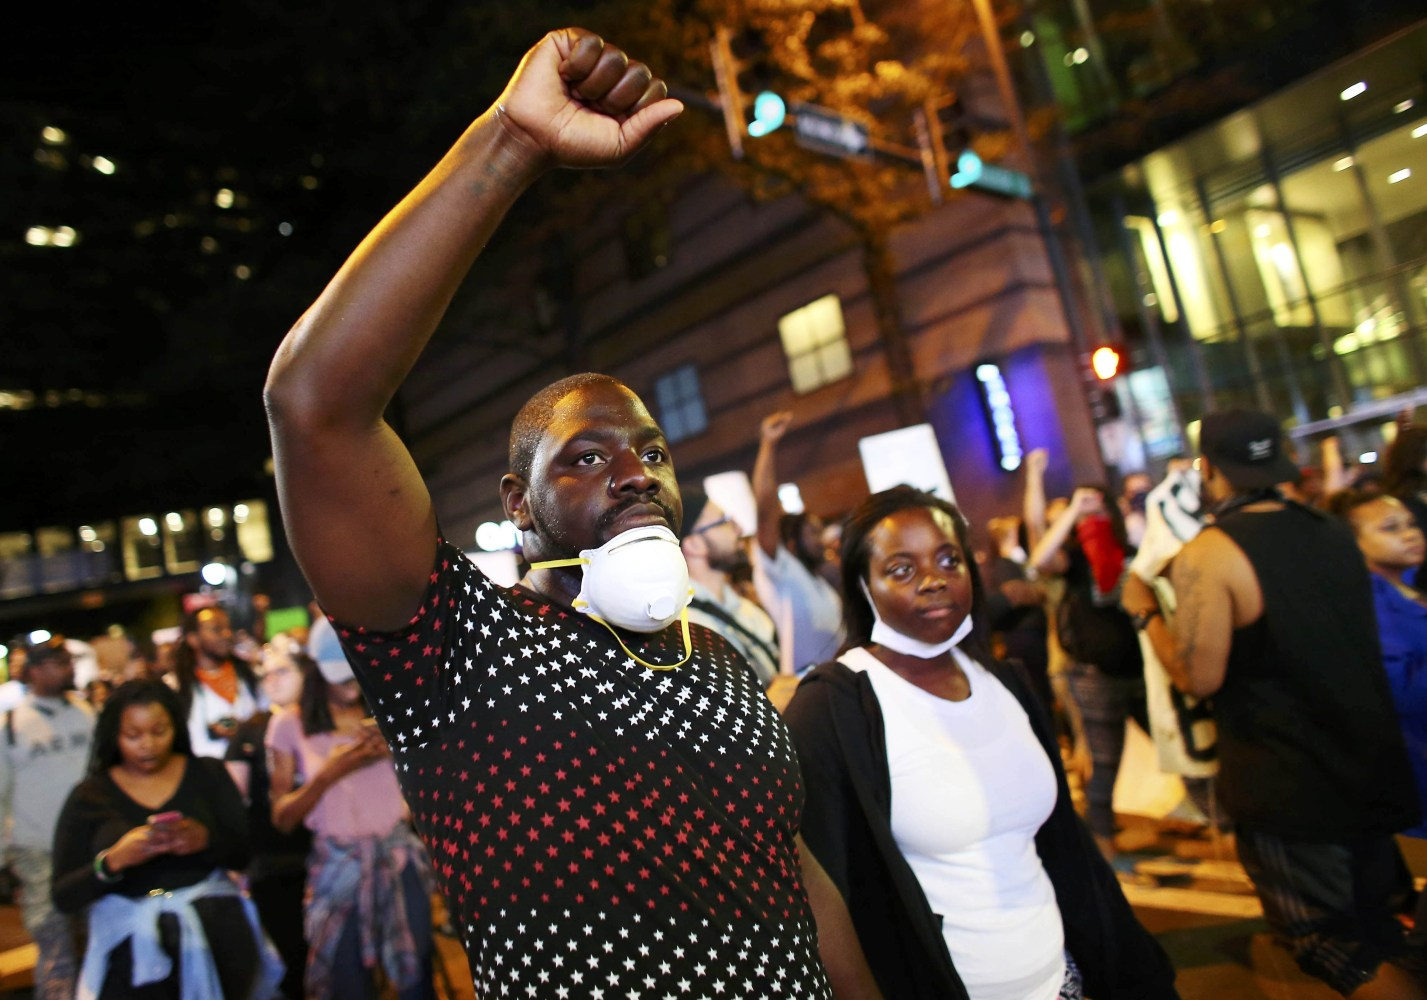 Curfew Takes Effect in Charlotte After Hours of Peaceful Protests